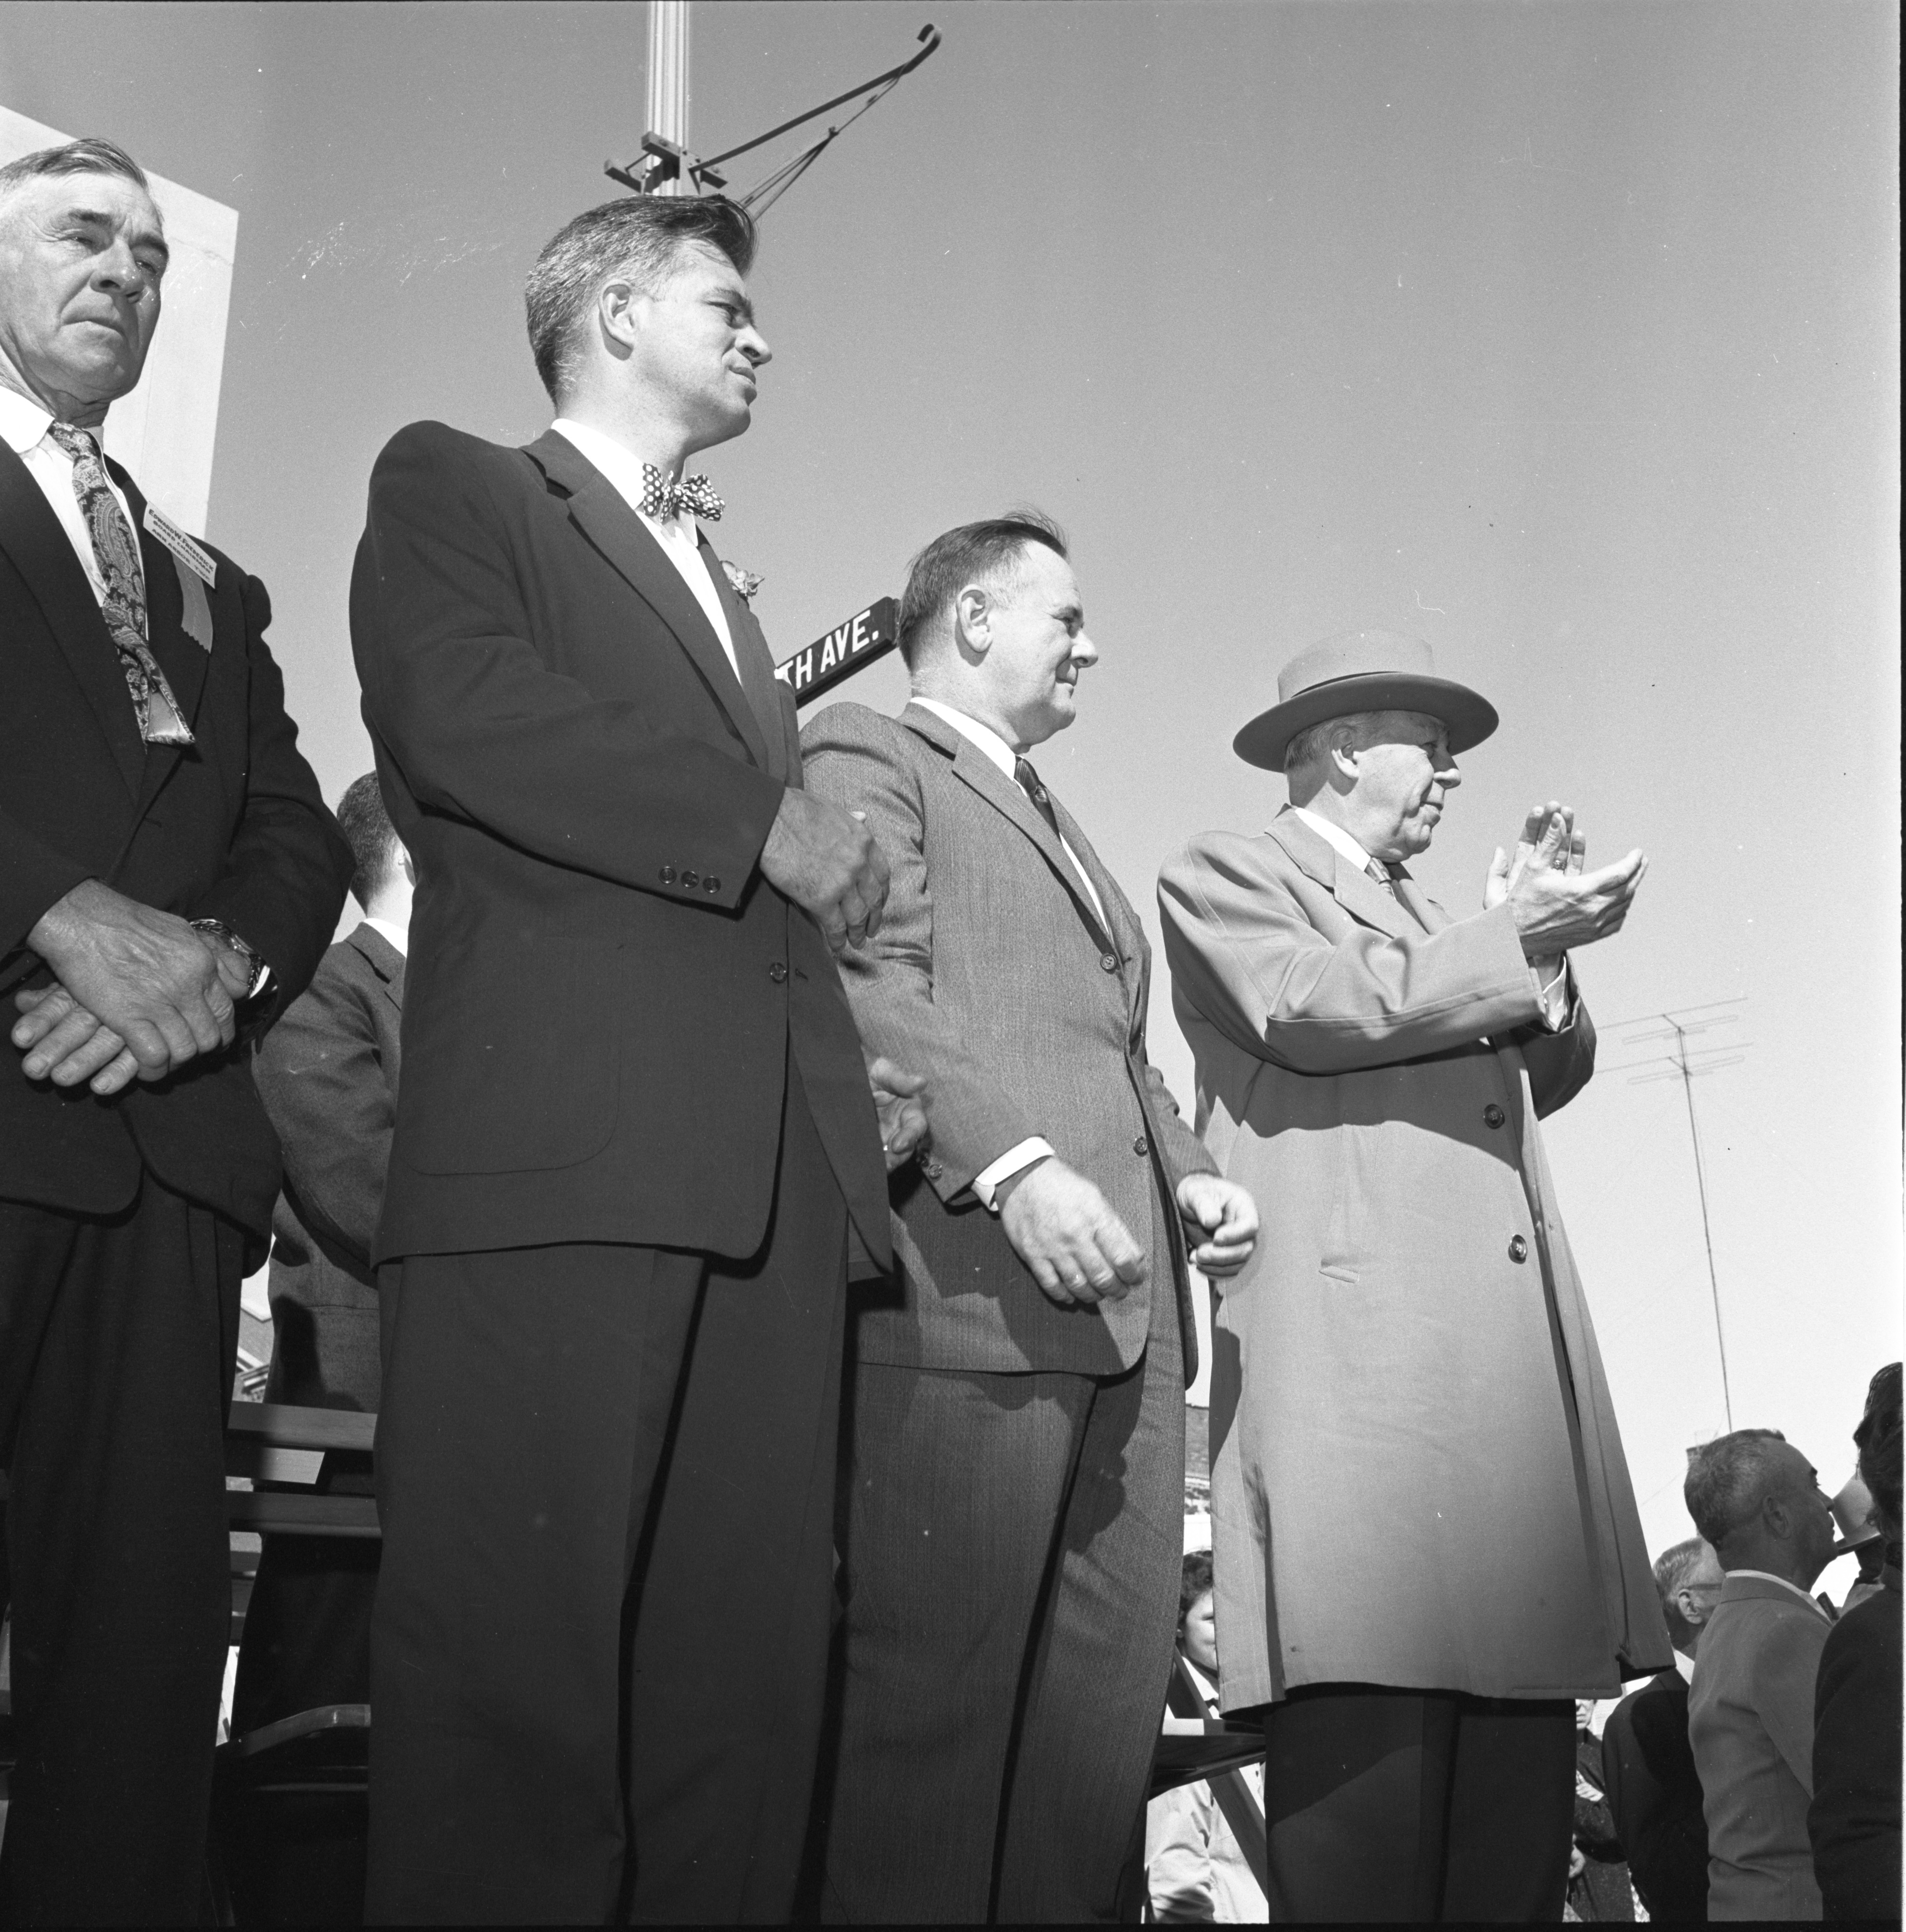 Edward Frederick, Gov. Williams, George Meader, & Wilber Brucker Watch The Washtenaw County Building Dedication Parade, October 1956 image